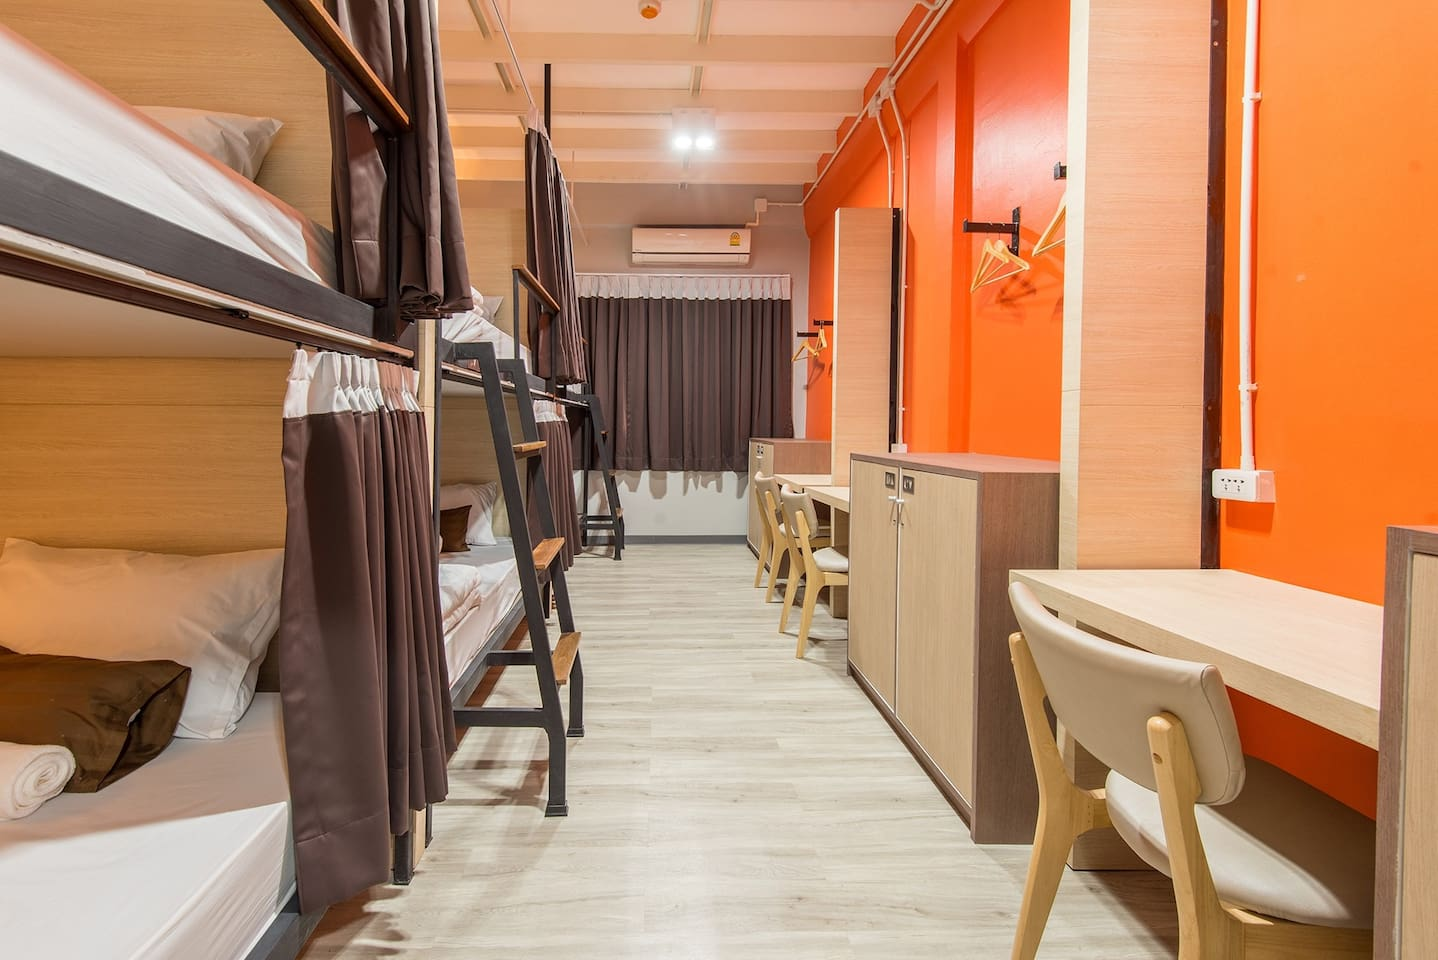 4ft bed Dormitory room with A/C and lockers